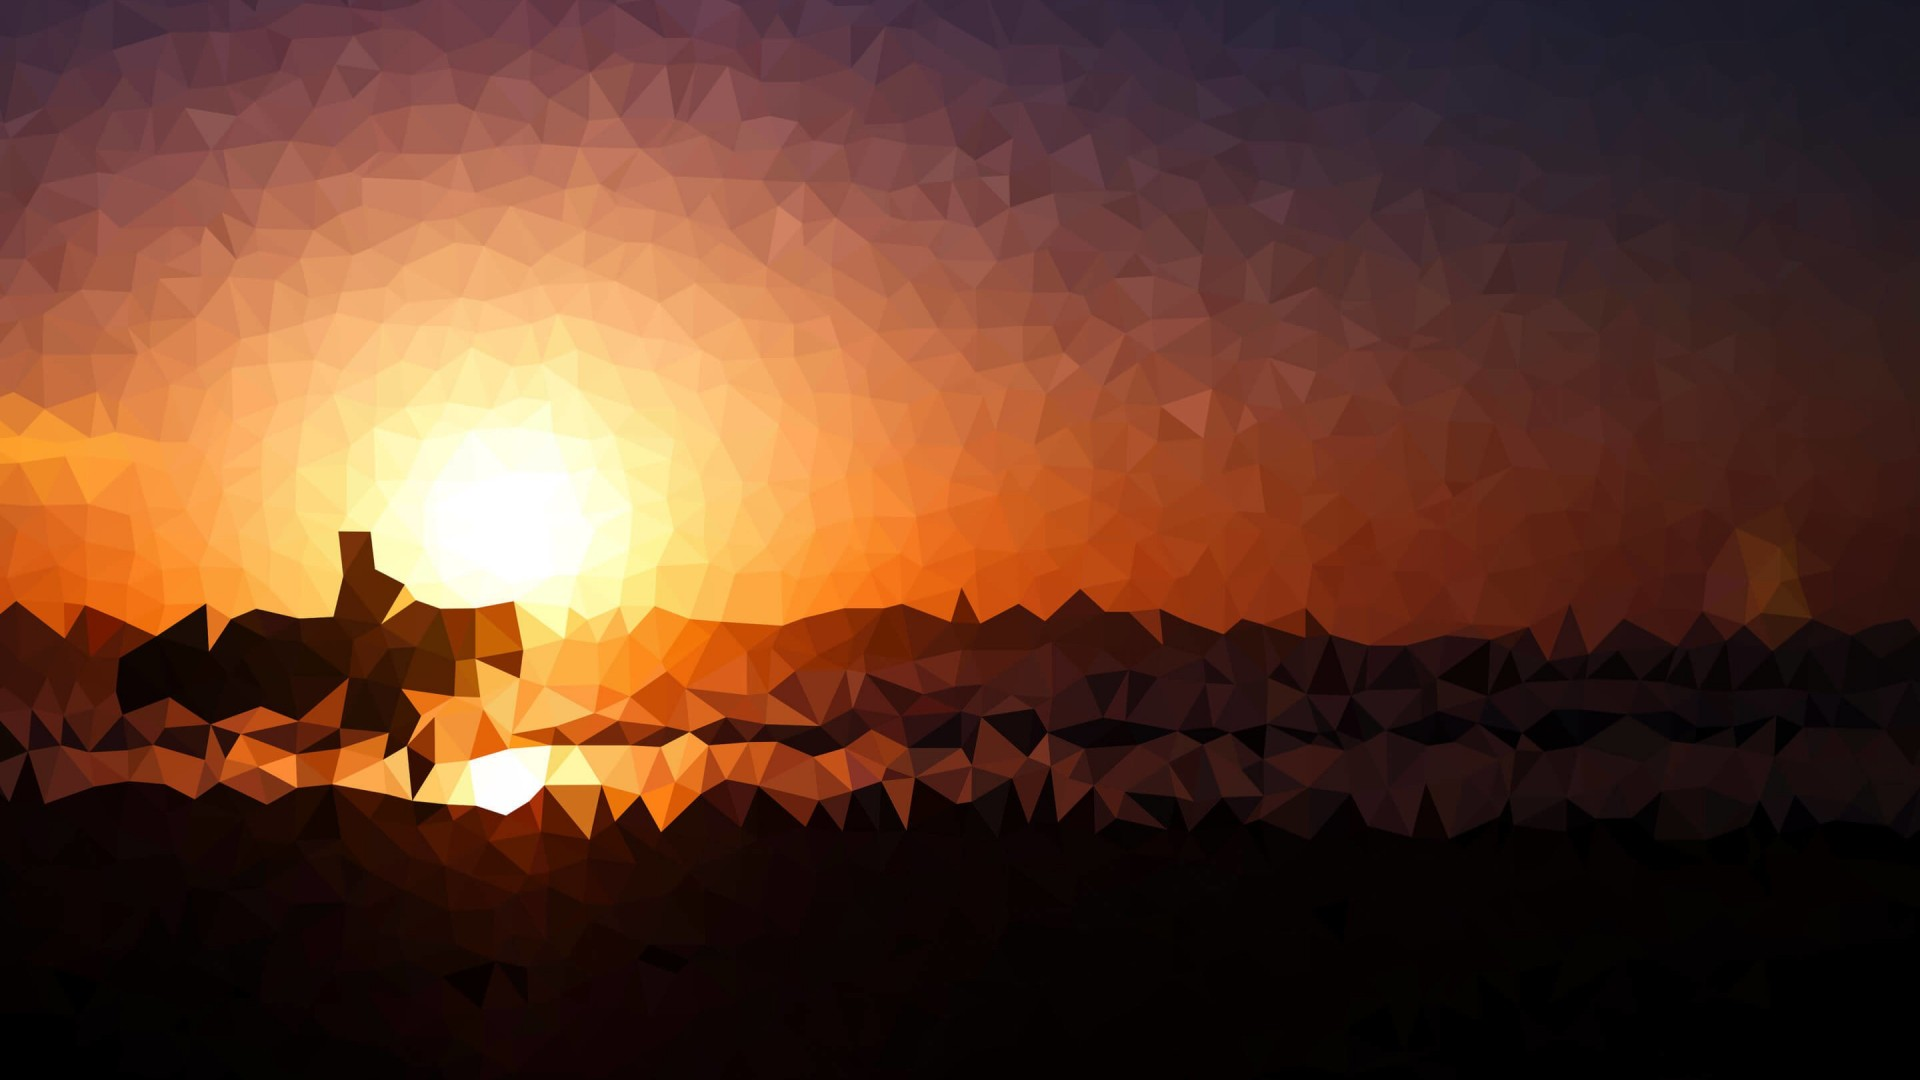 Low Poly Sunset Wallpaper for Desktop 1920x1080